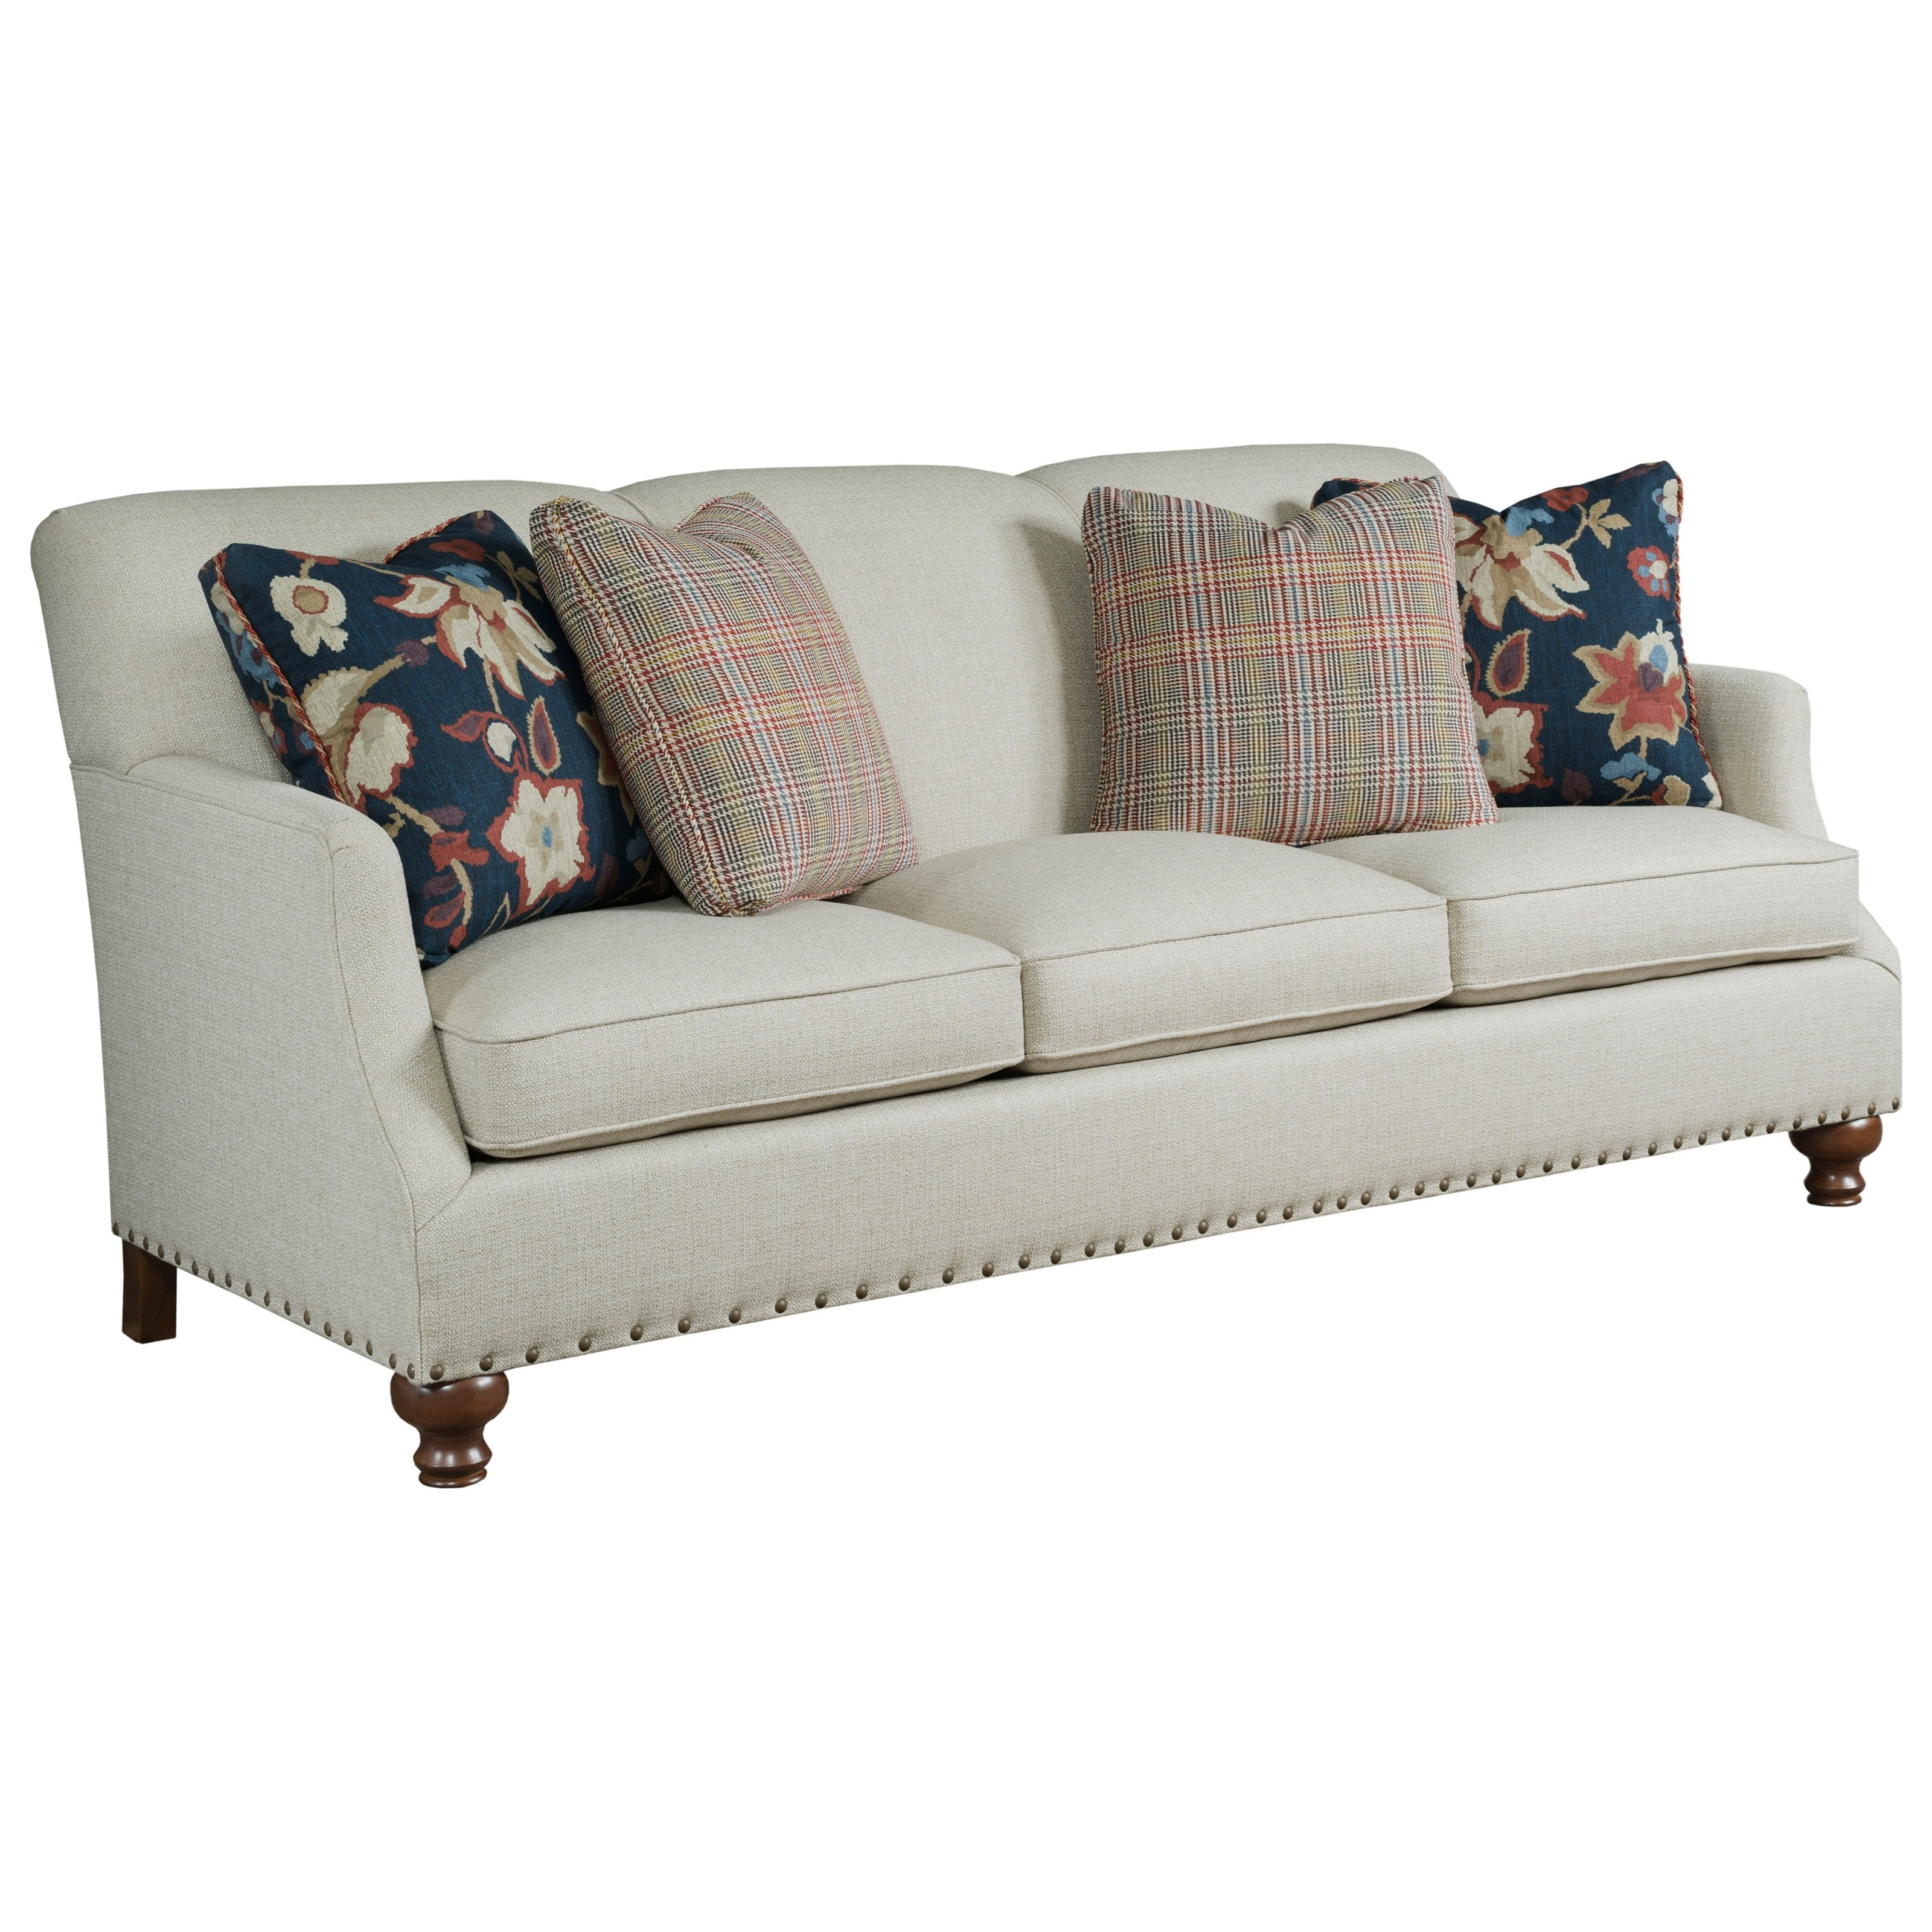 Liberty Upholstered Sofa by Kincaid Furniture at Johnny Janosik